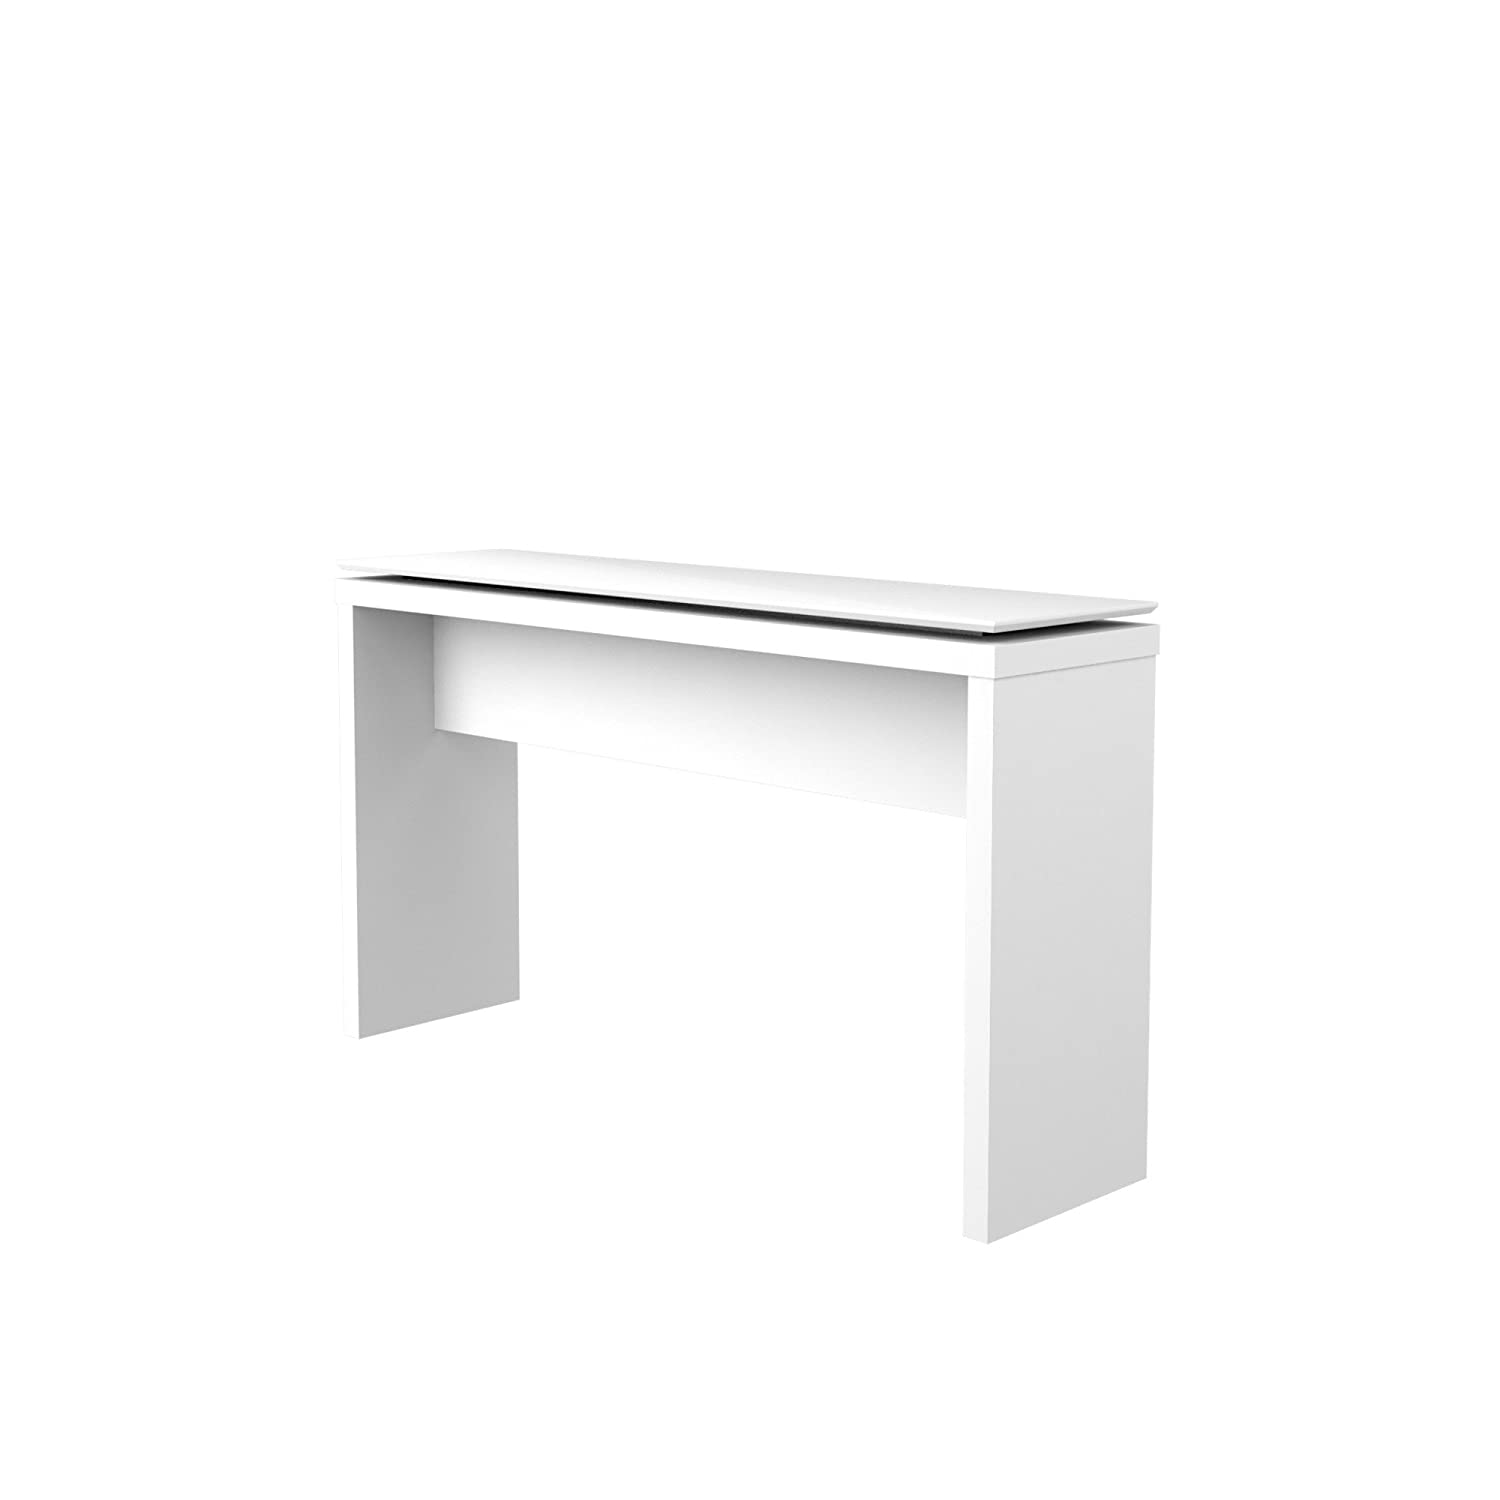 Manhattan Comfort Lincoln Entryway Sideboard, White Gloss